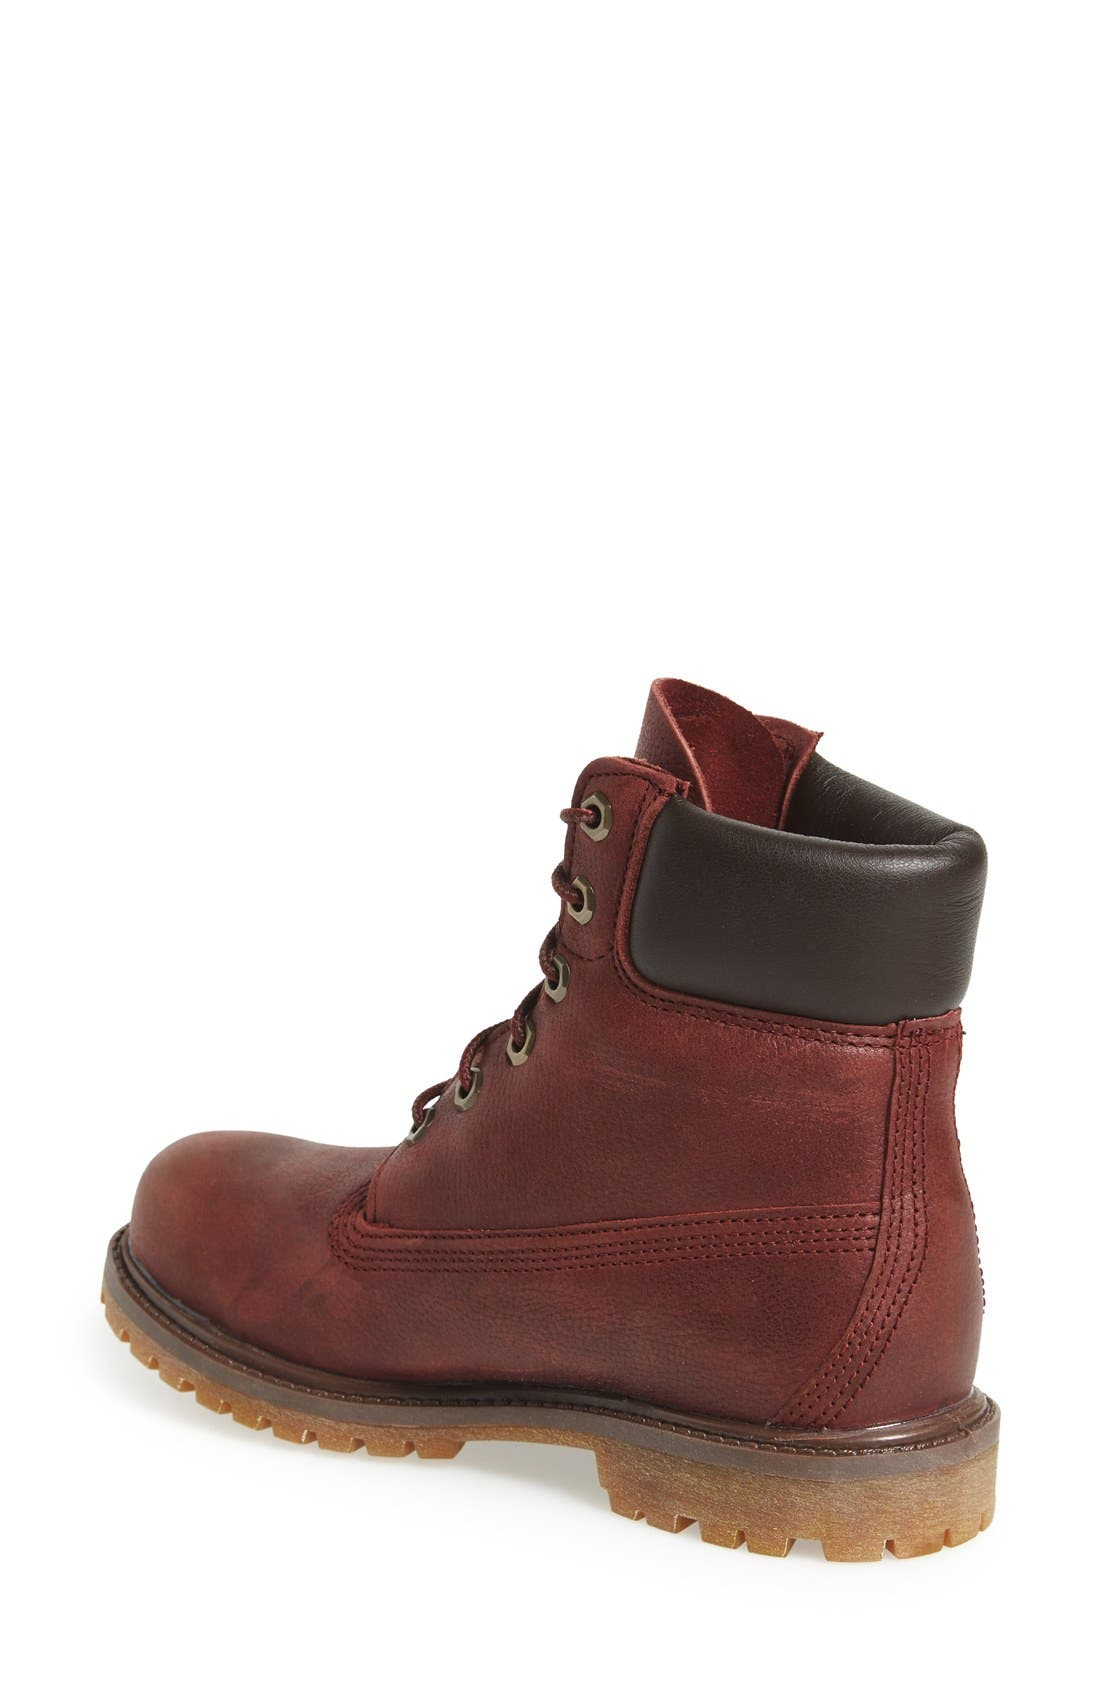 Alternate Image 2  - Timberland '6 Inch Premium' Waterproof Boot (Women)